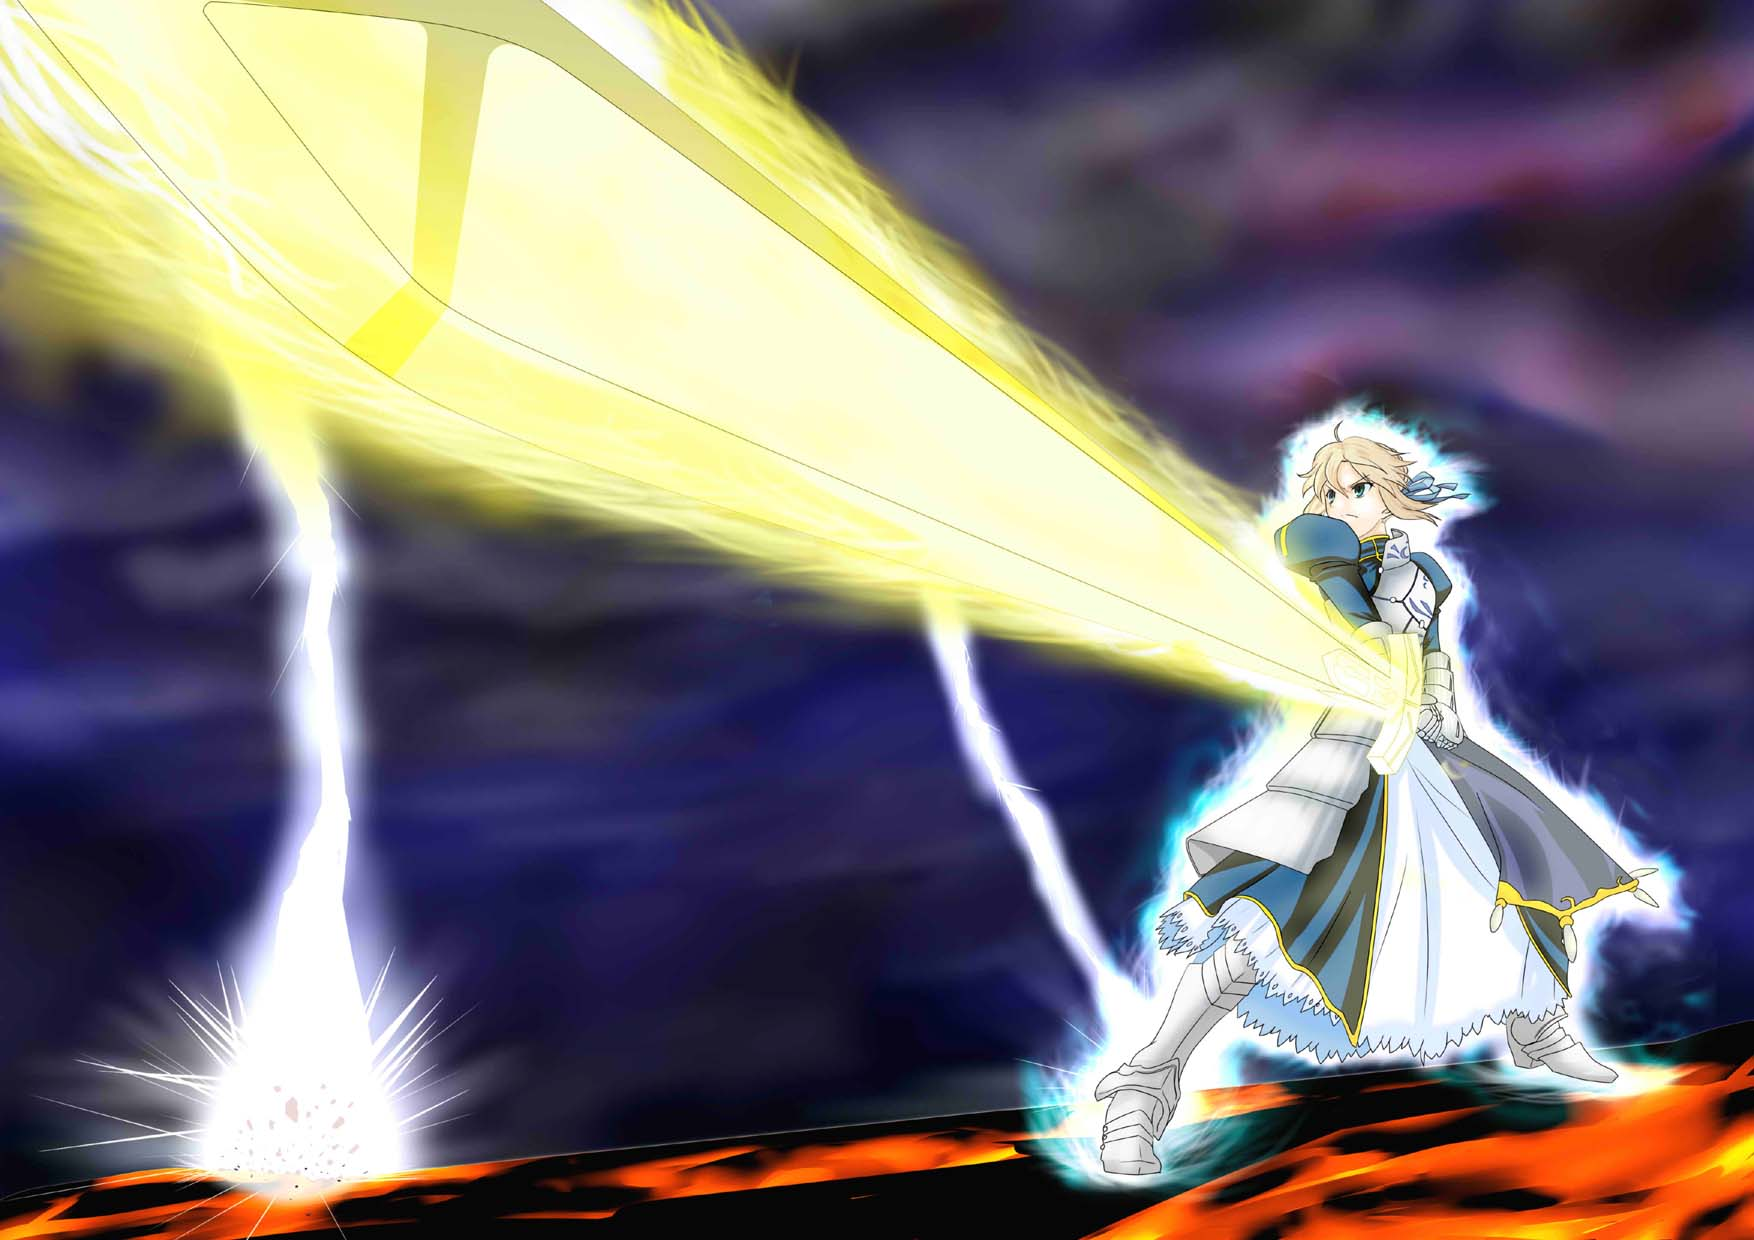 1girl ahoge armor armored_dress artoria_pendragon_(all) aura bangs blonde_hair braid clouds cloudy_sky dress excalibur fate/stay_night fate_(series) french_braid gauntlets glowing glowing_sword glowing_weapon green_eyes hair_between_eyes hair_ribbon highres holding holding_sword holding_weapon lightning planted_sword planted_weapon ponytail ribbon saber short_hair sky solo sunrise_stance sword tomo5656ky weapon